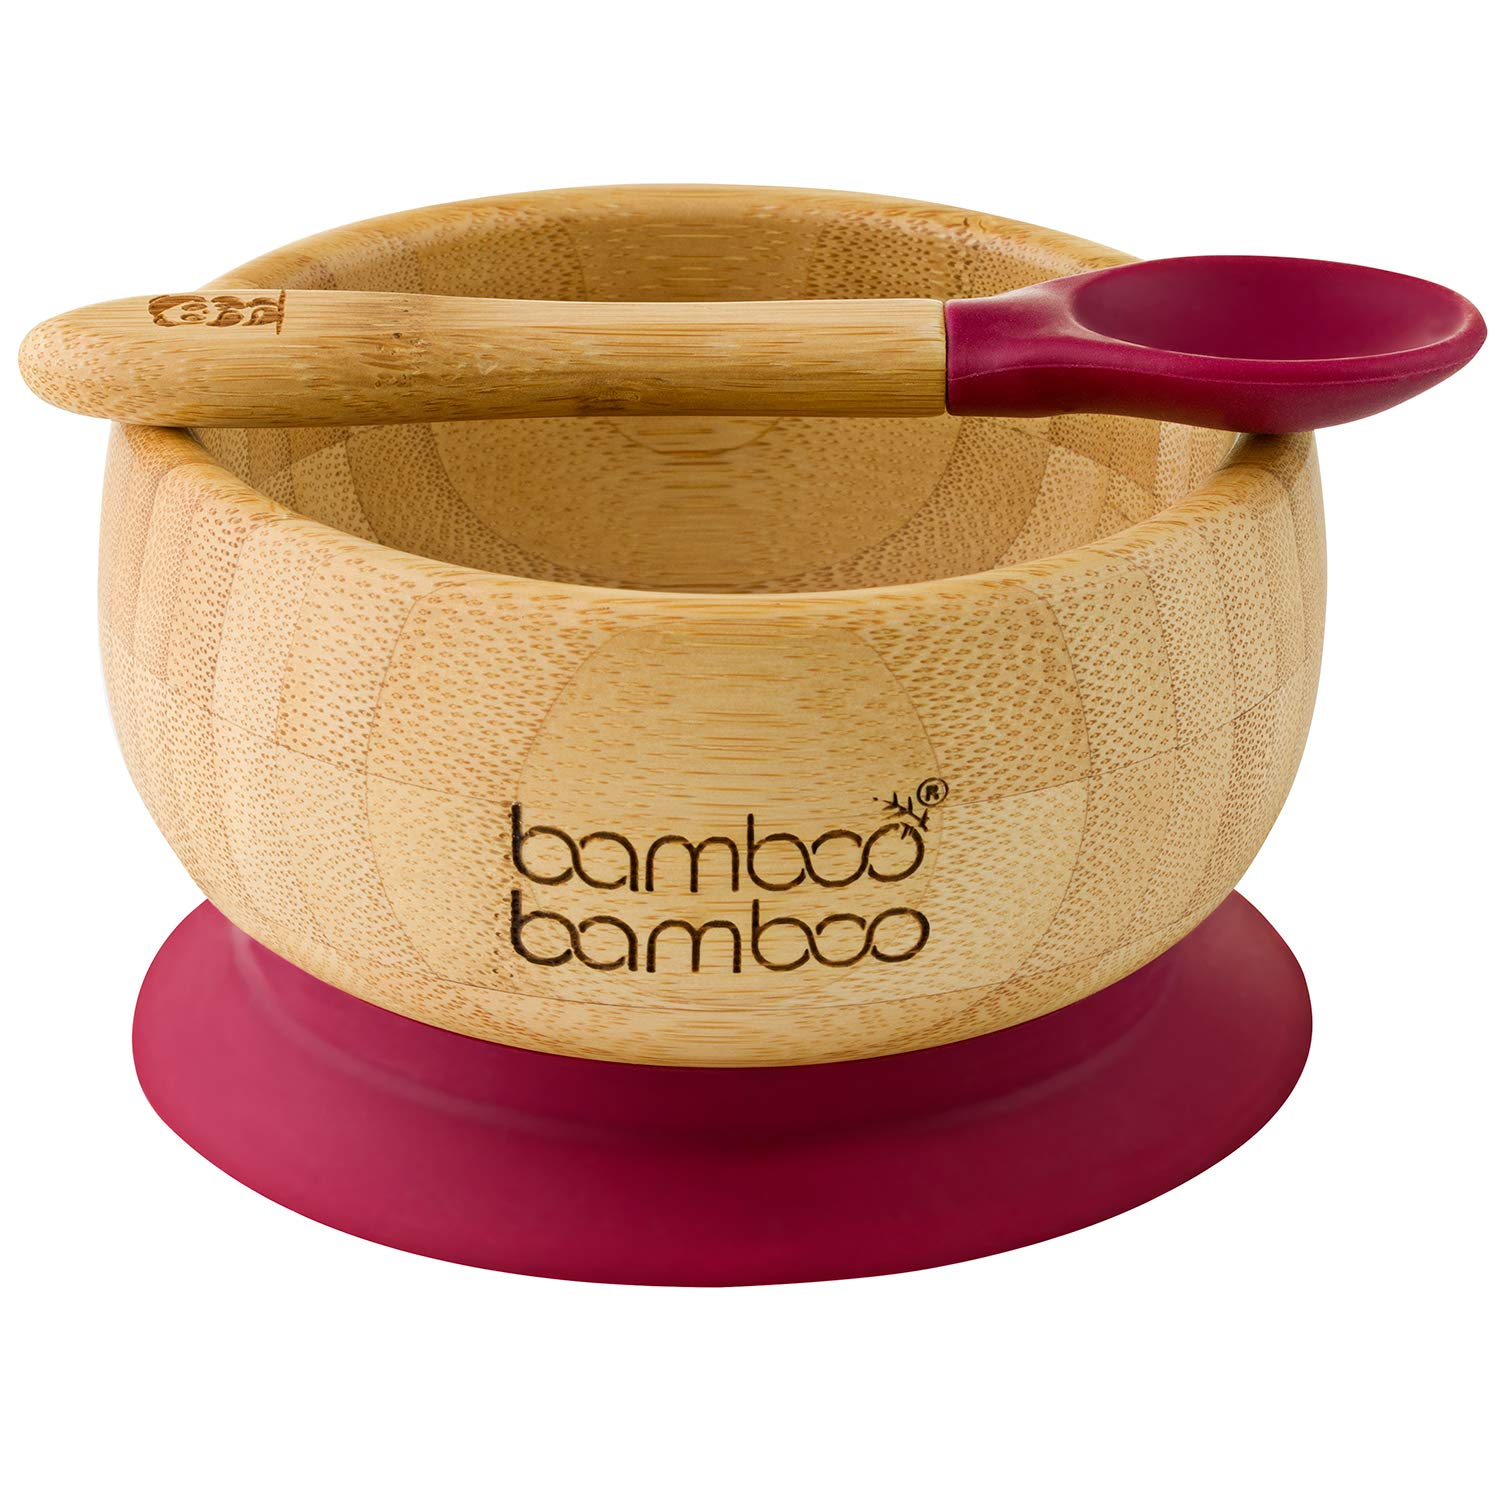 bamboo bamboo ® Baby Suction Bowls and Matching Spoon Set, Stay Put Feeding Bowl, Natural (Cherry)